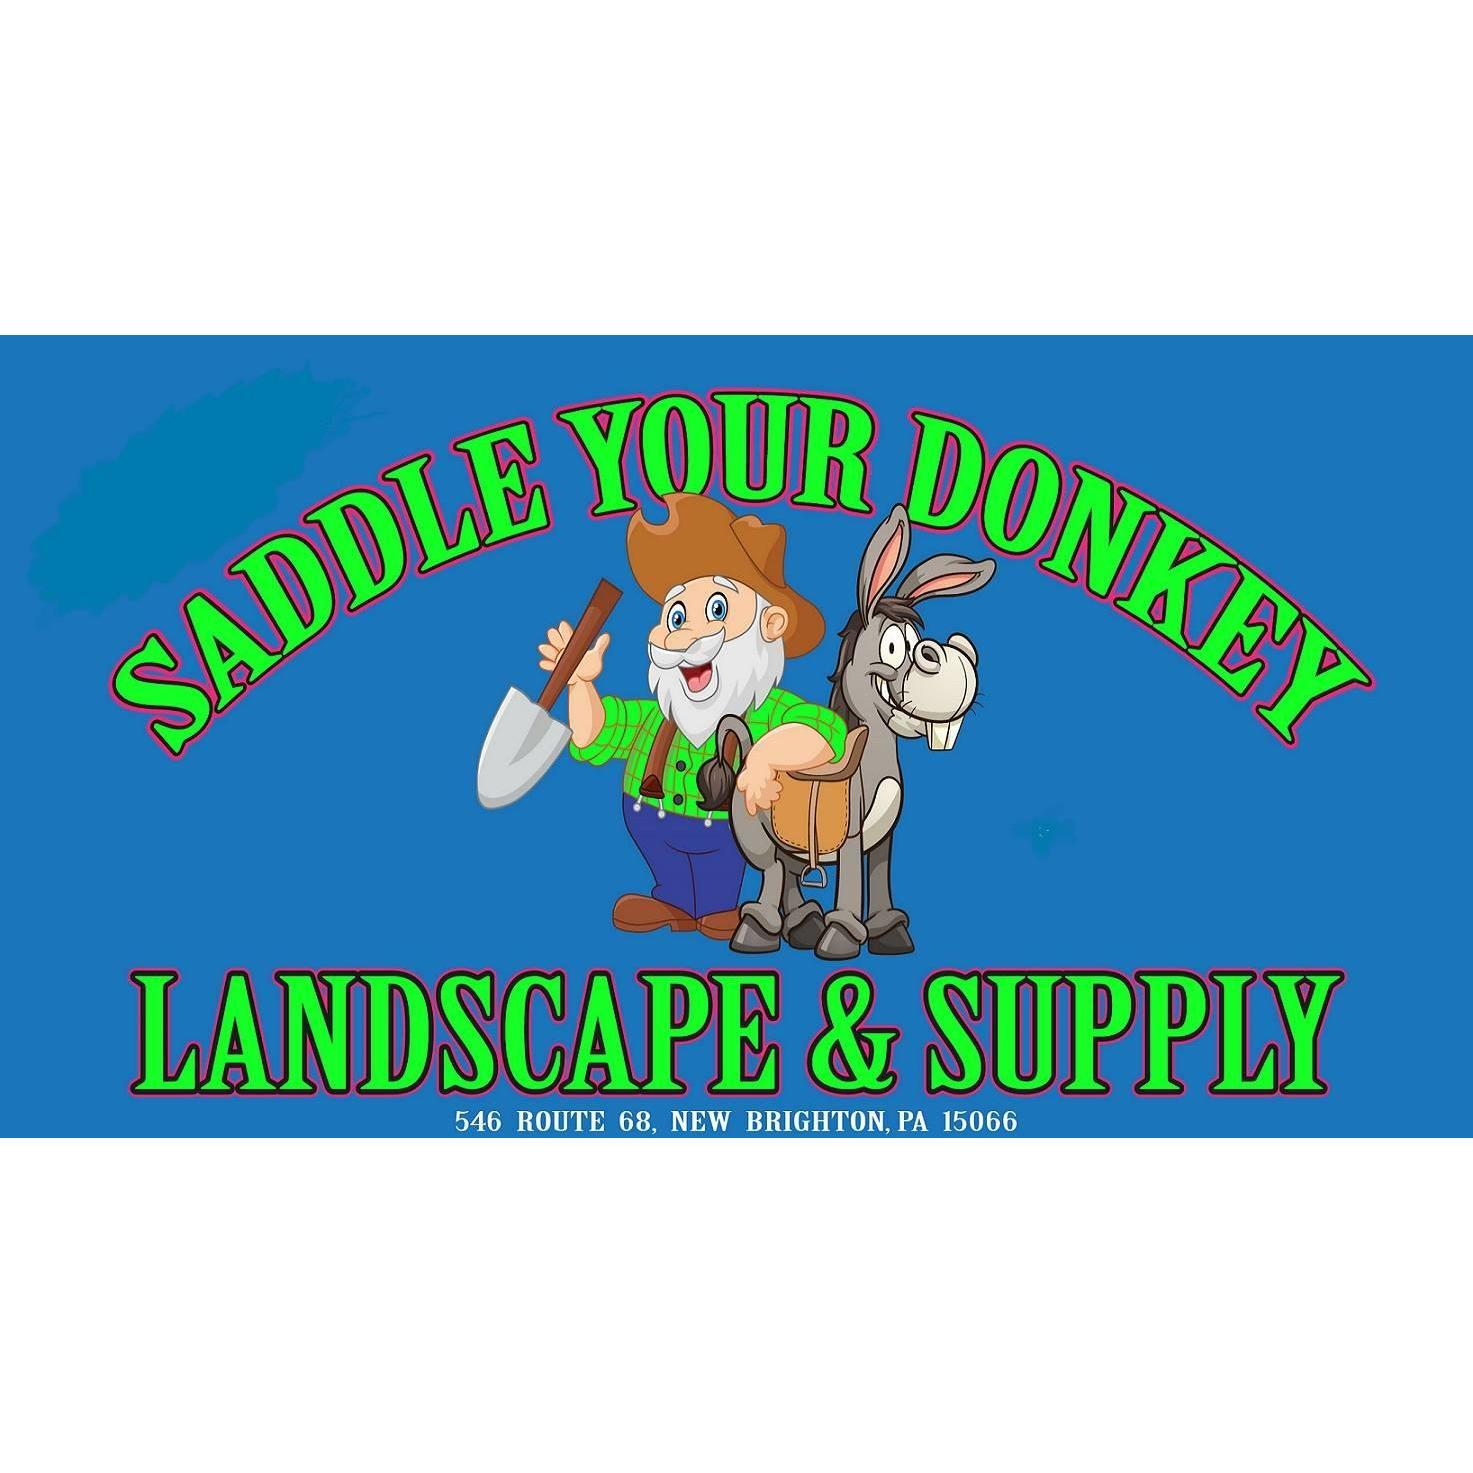 Saddle Your Donkey Landscape & Supply